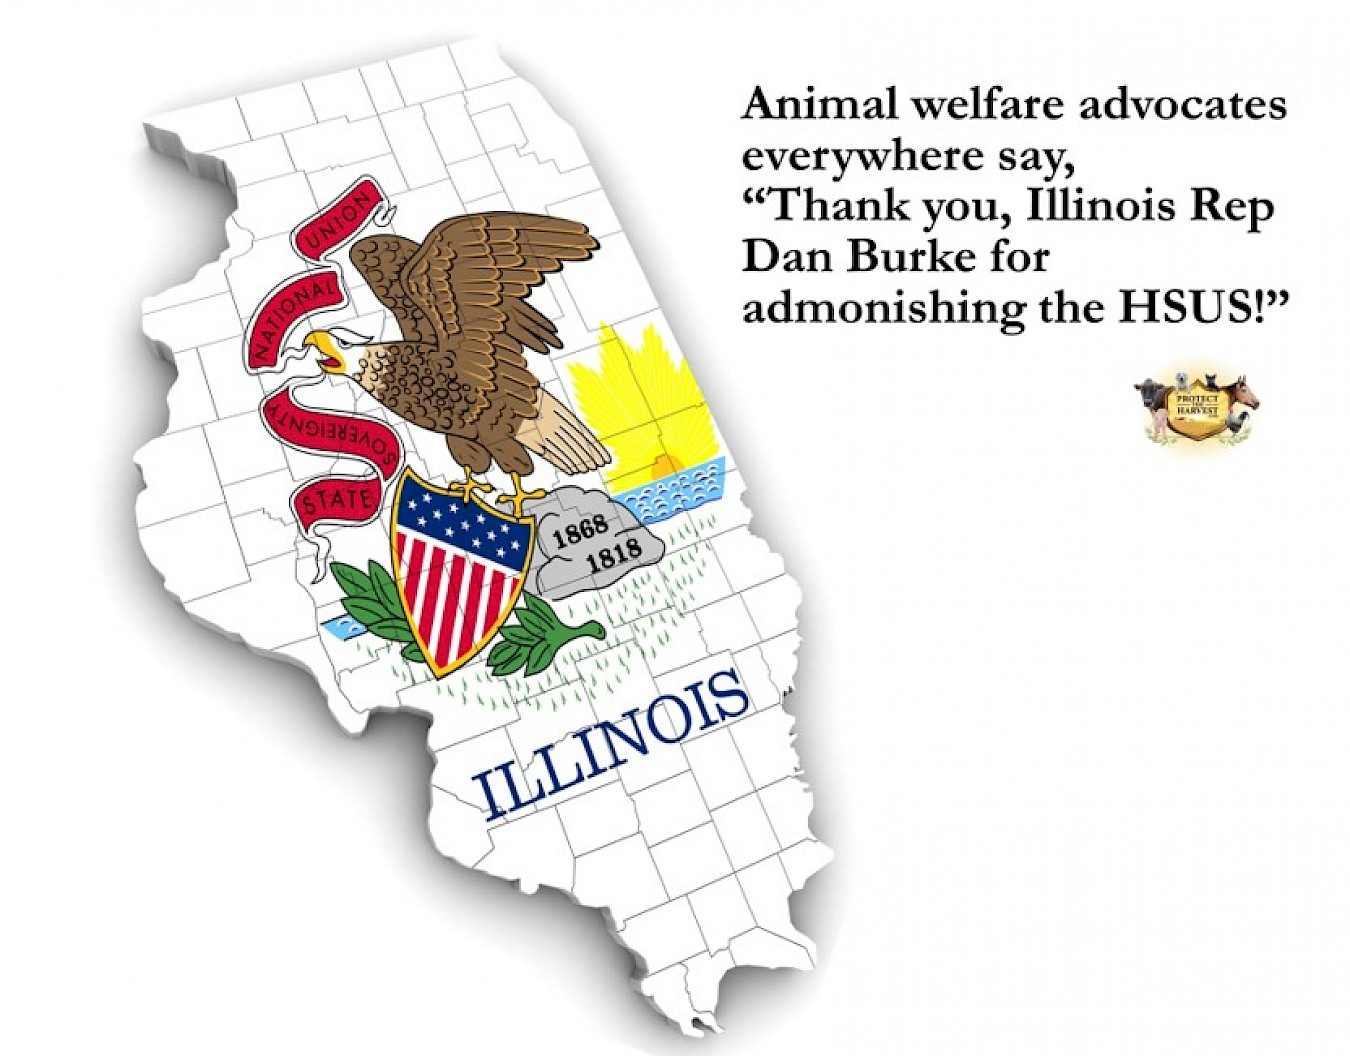 Illinois Lawmaker Admonishes HSUS